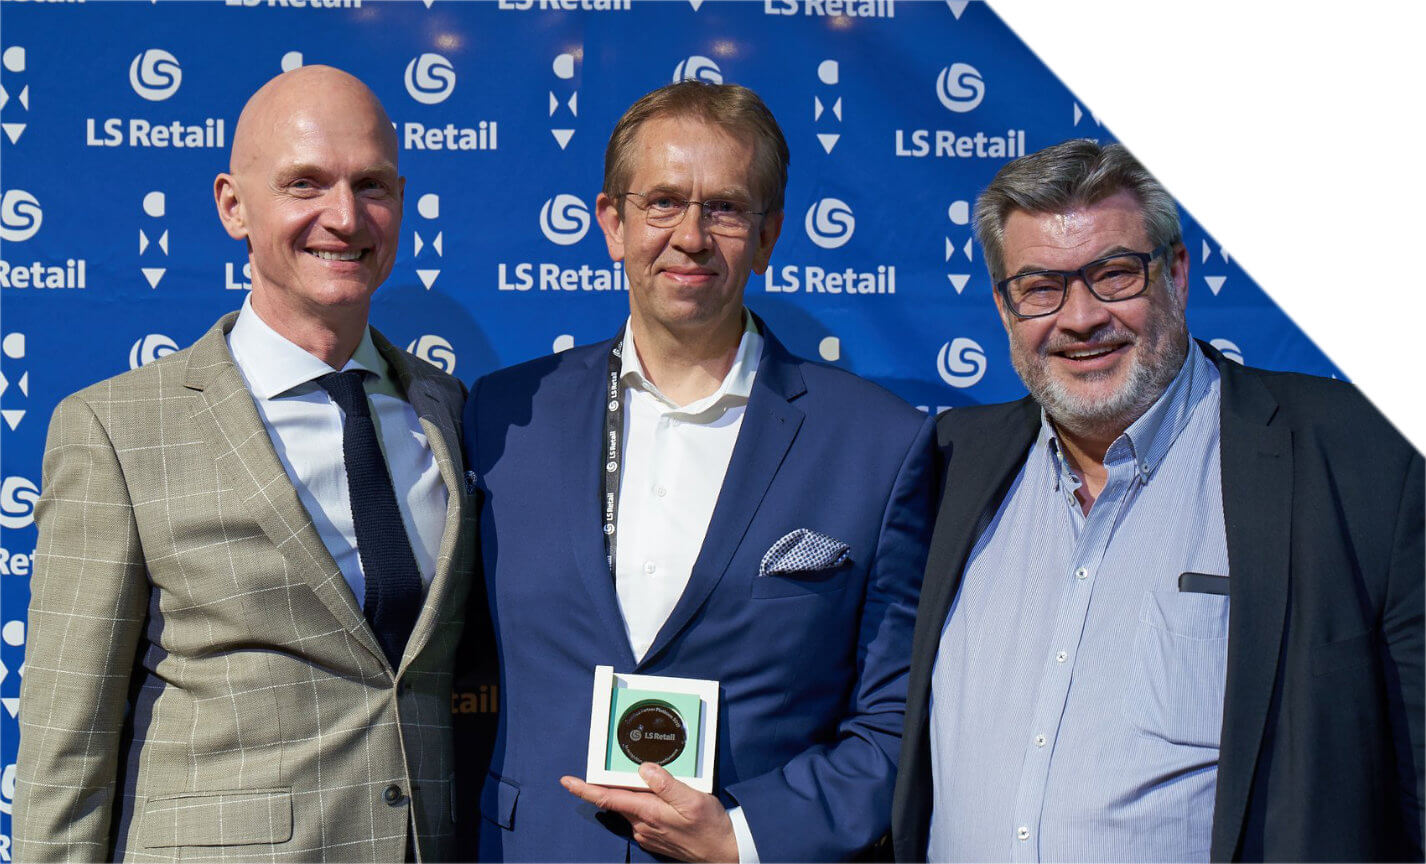 LS Retail Platinum Partner